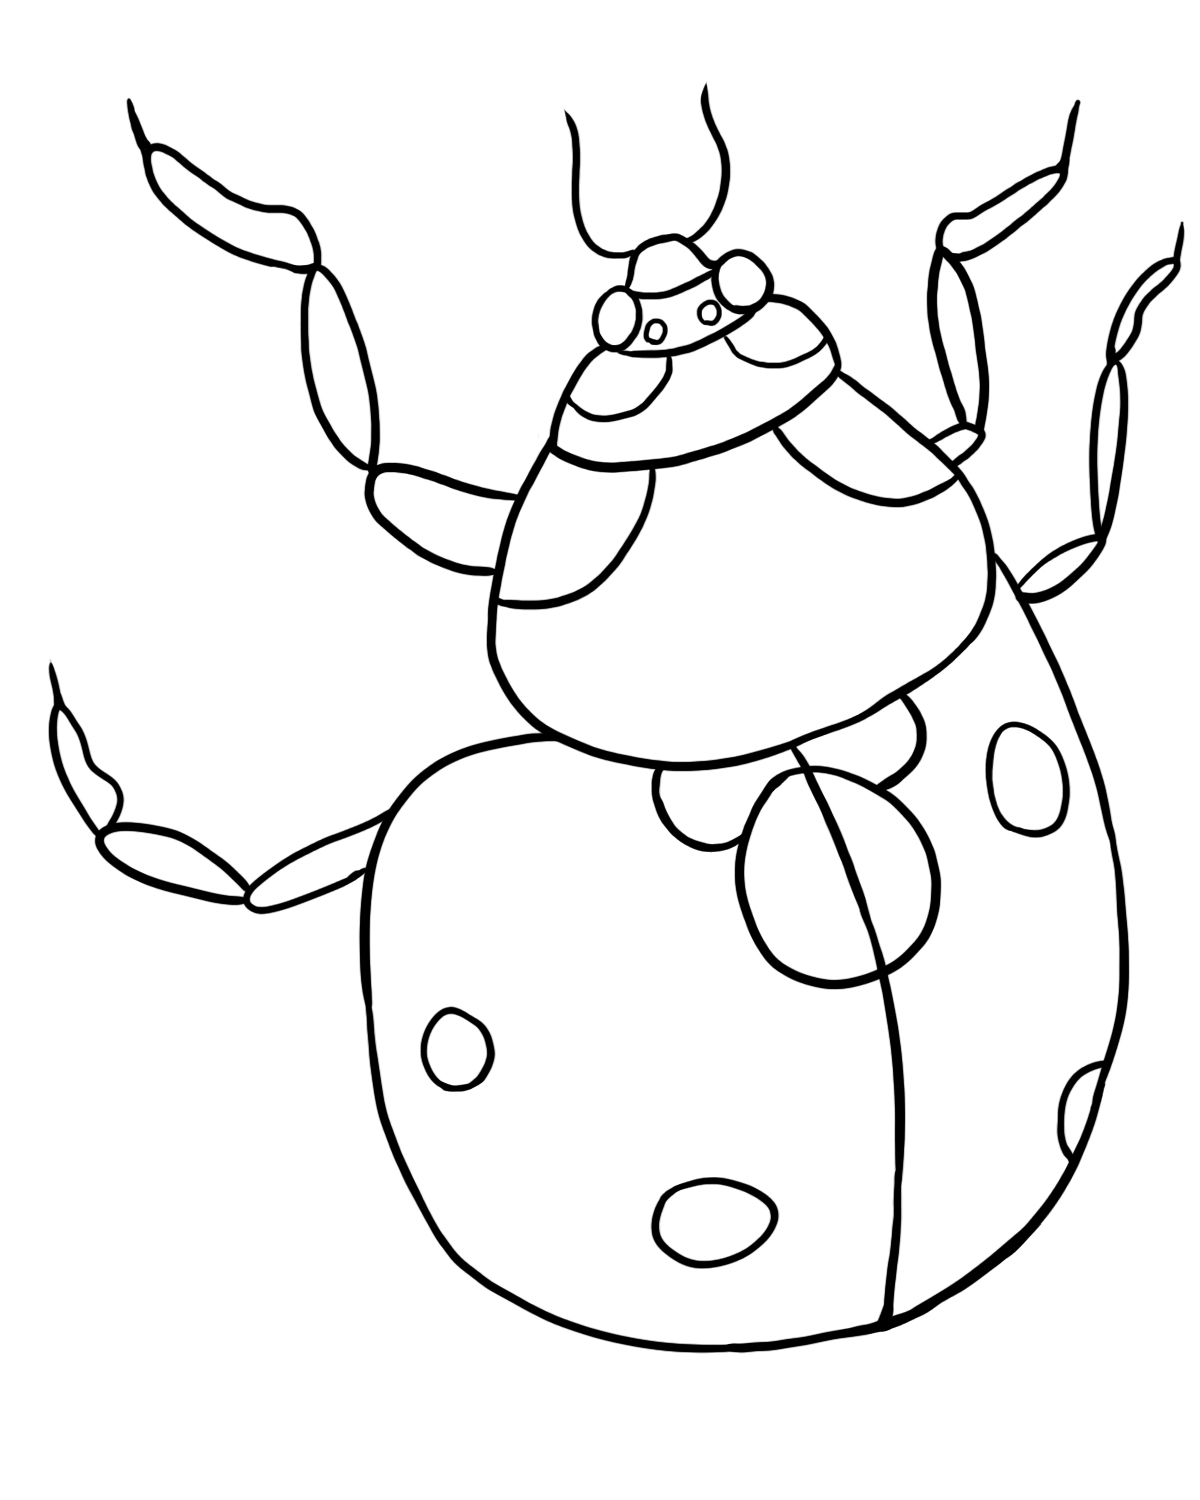 colouring ladybird oodles of doodles ladybug coloring pages ladybird colouring